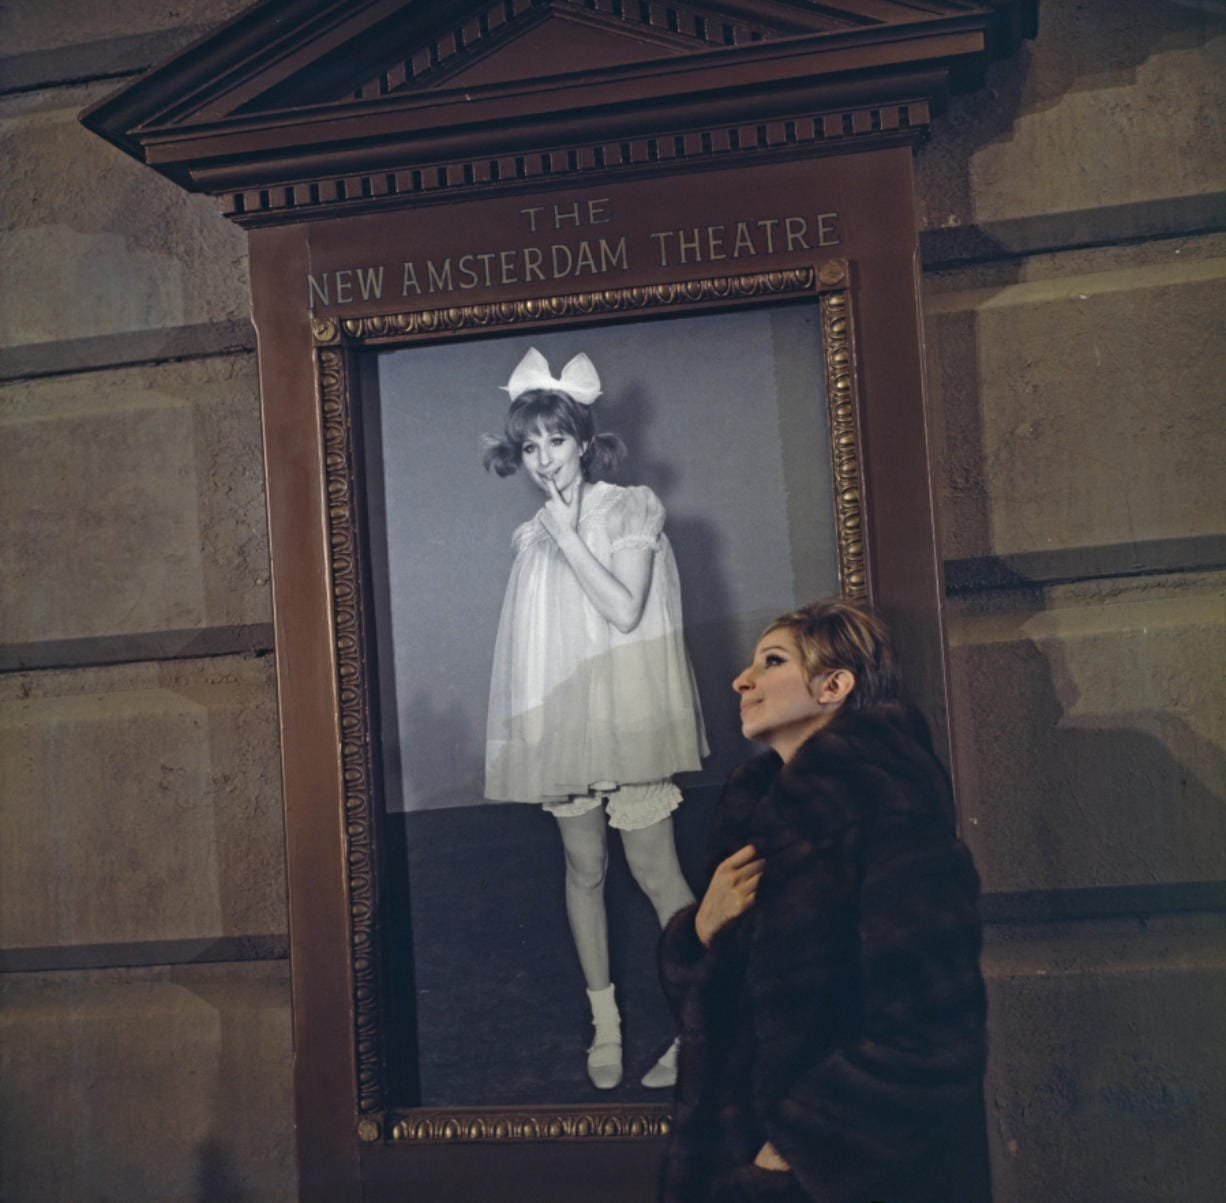 """Actress and singer Barbra Streisand outside the New Amsterdam Theatre in New York City in 1968, with a poster of herself in the movie """"Funny Girl."""" (Hulton Archive/Getty Images)"""